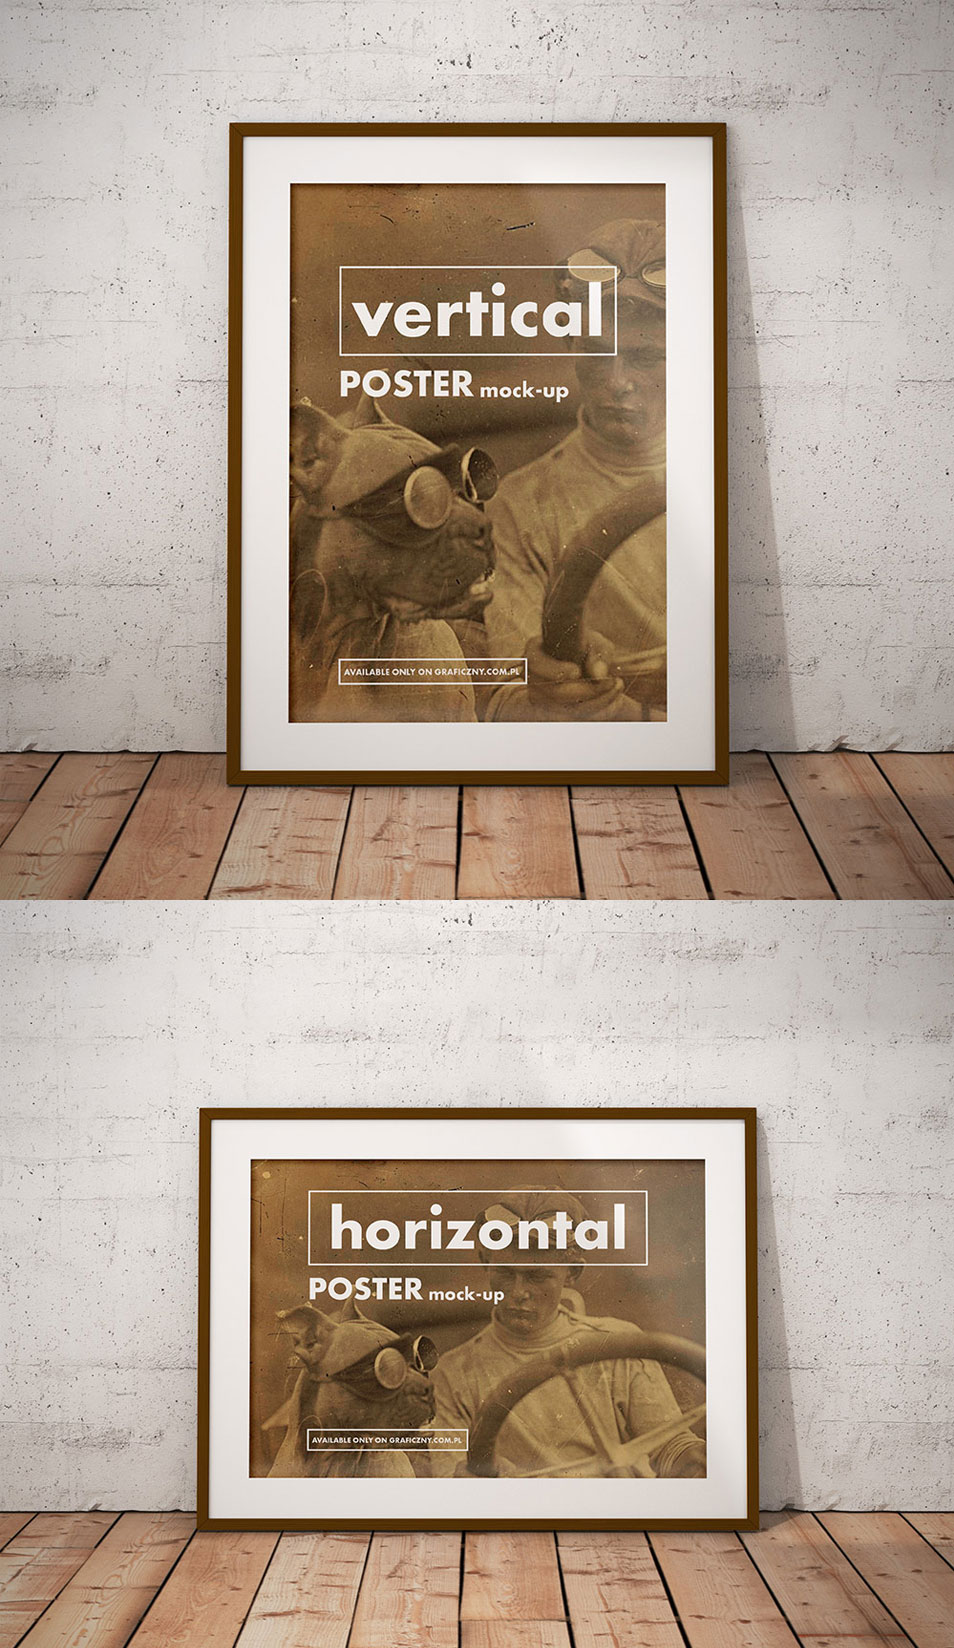 Horizontal and Vertical Poster Mockup